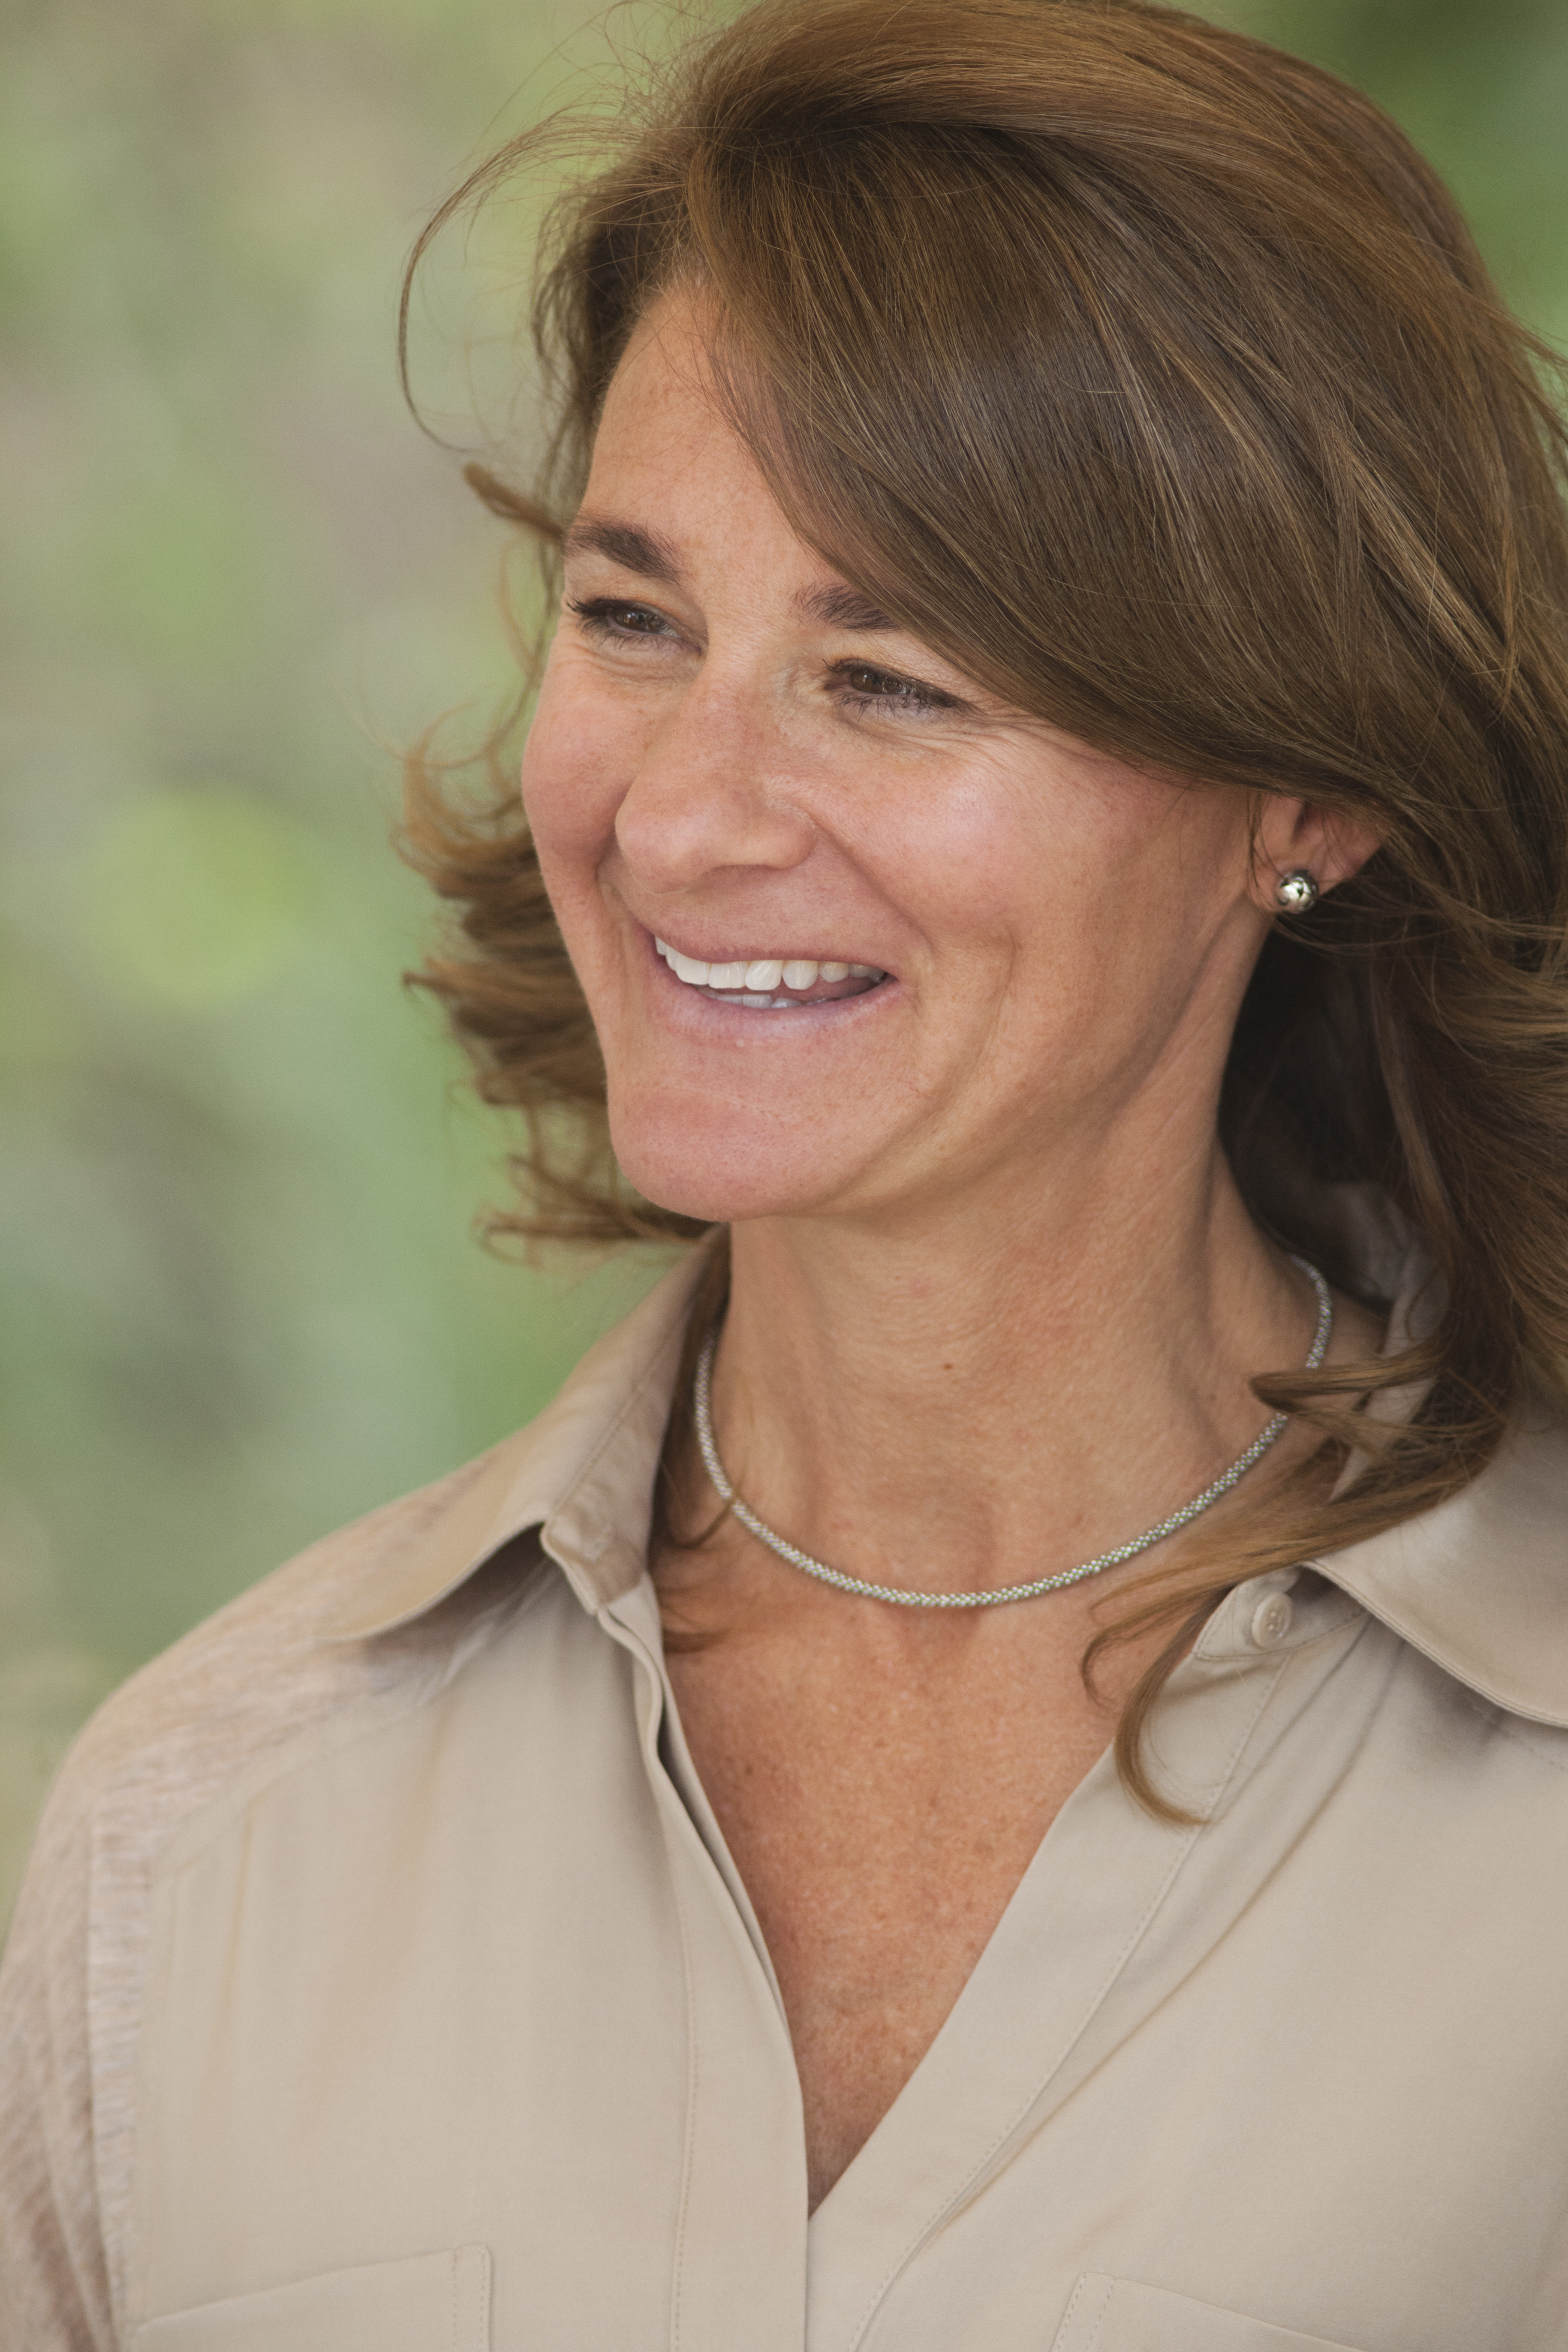 Melinda Gates during a visit to AGRA and Farm Concern commercial farm in Mbuguni, Tanzania on September 26,2012.